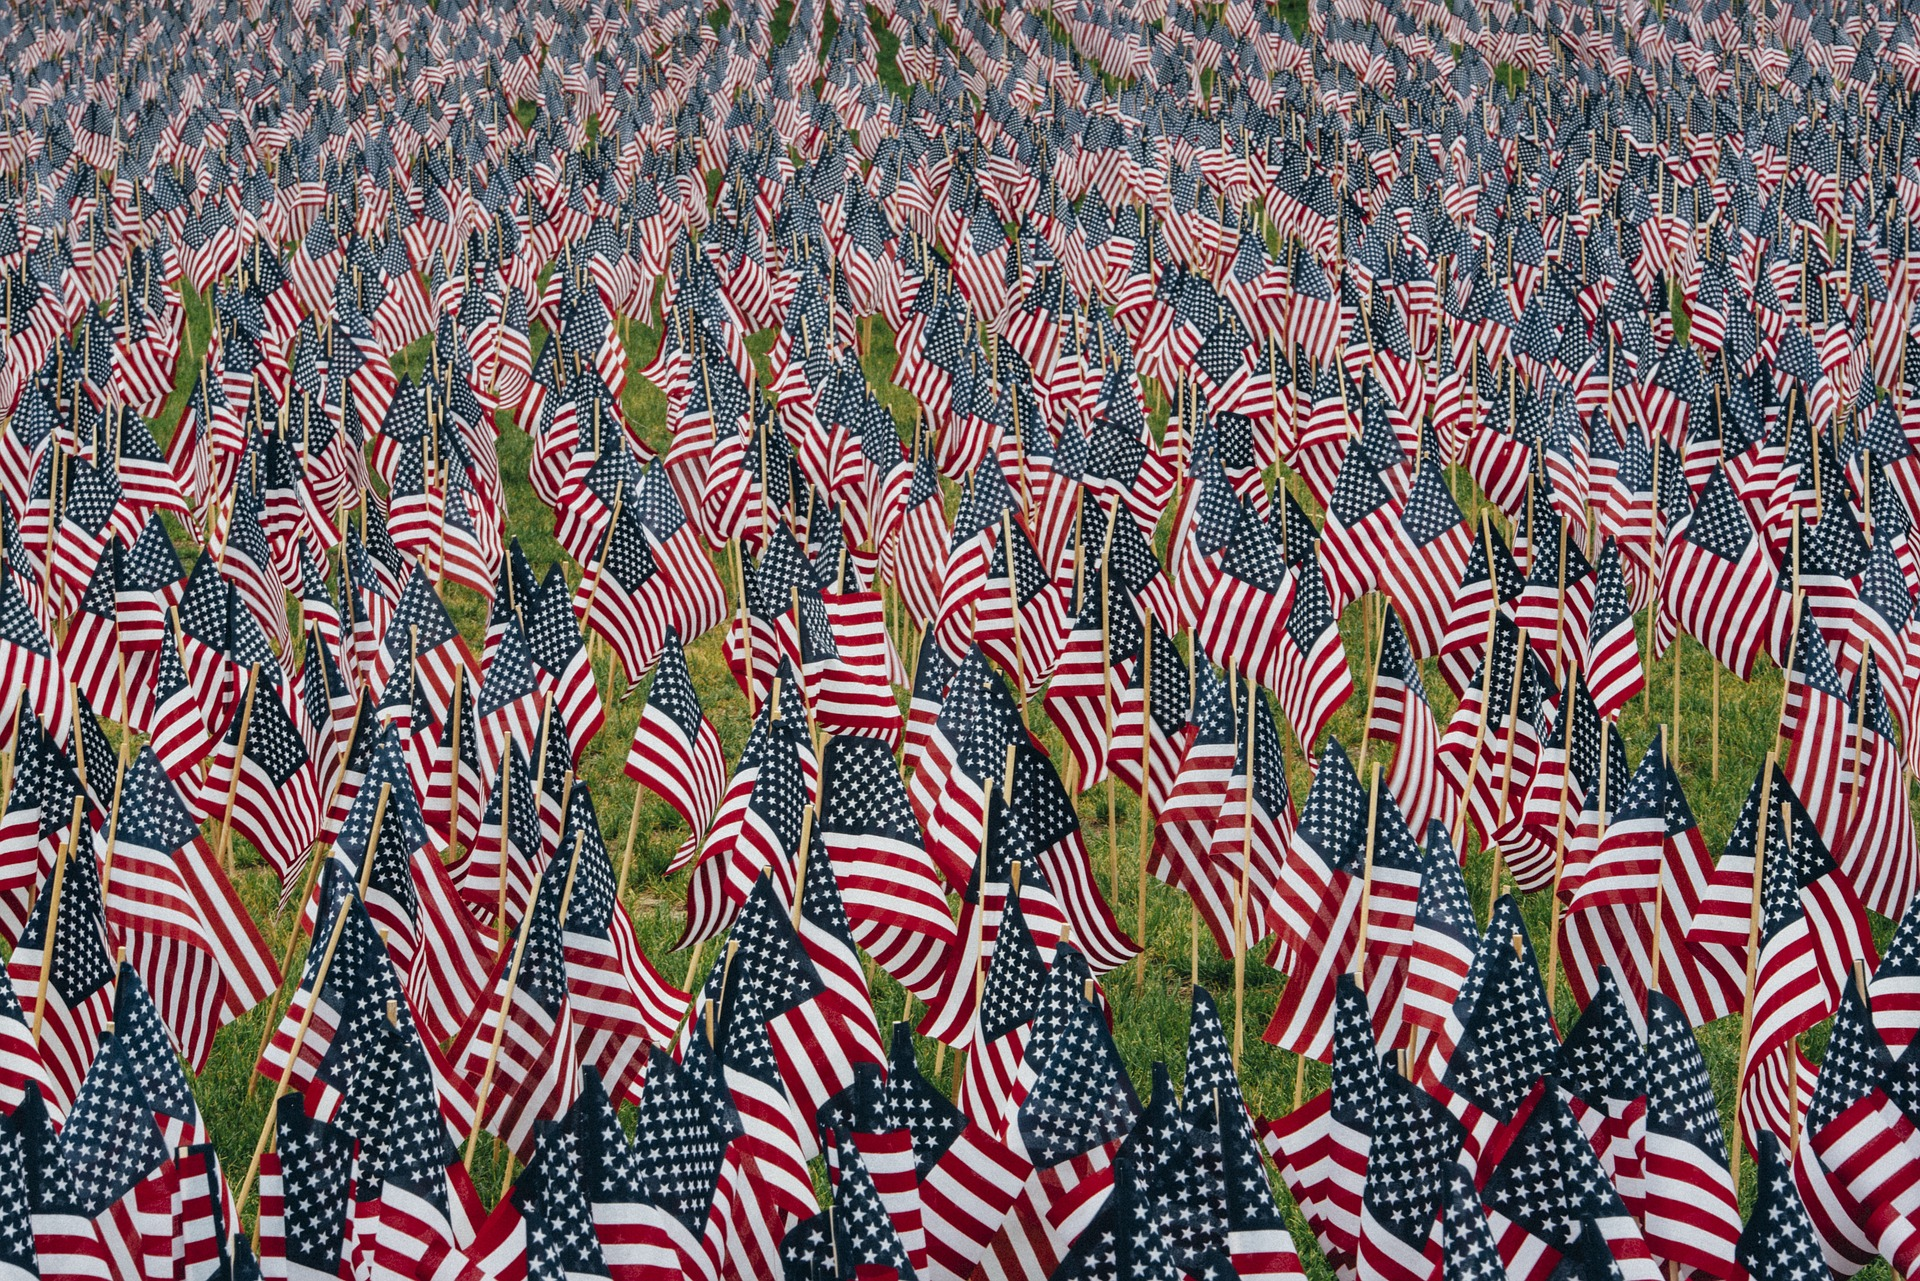 Edited photo of lots of American flags repeated, stretching into the distance